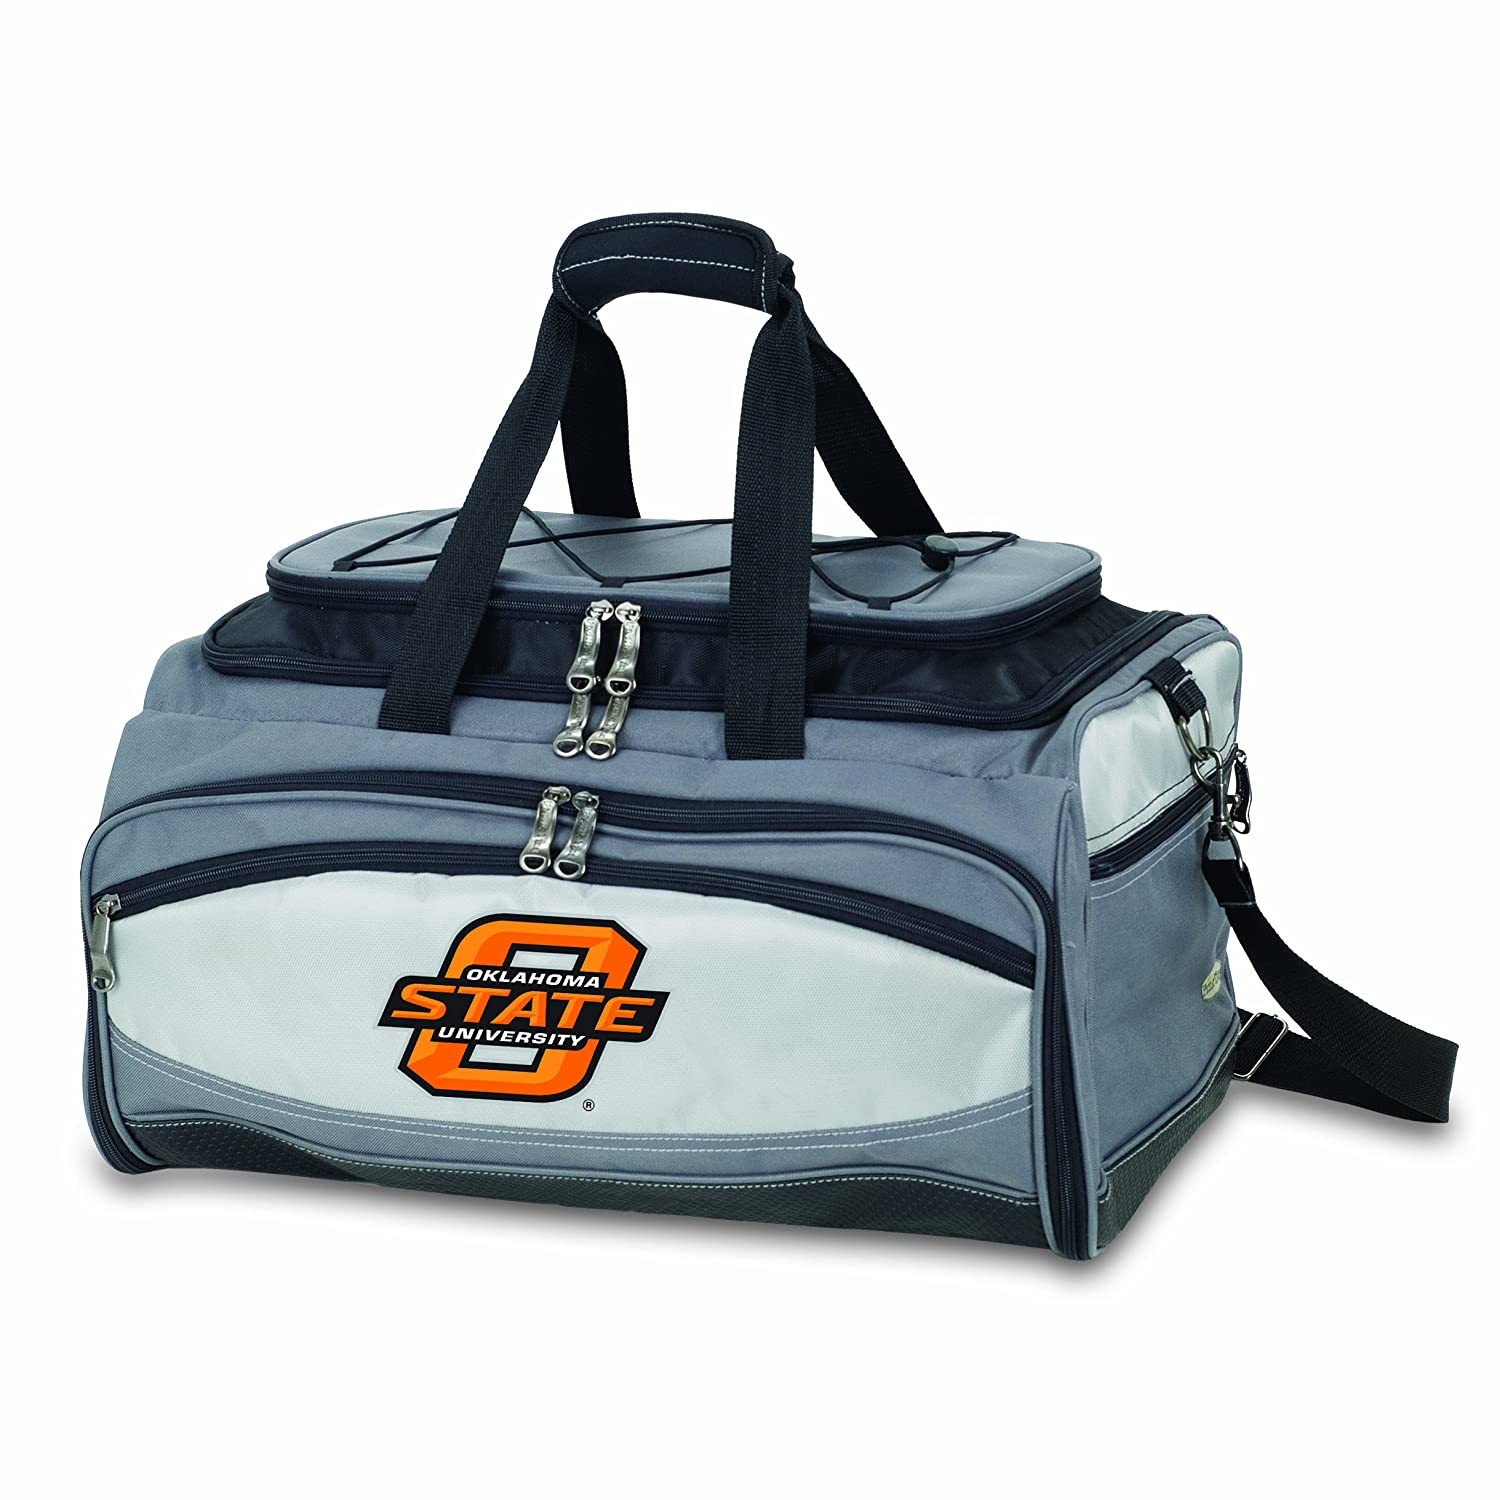 NCAA Oklahoma State Cowboys Buccaneer Tailgating Cooler withグリル B0018JLG0K